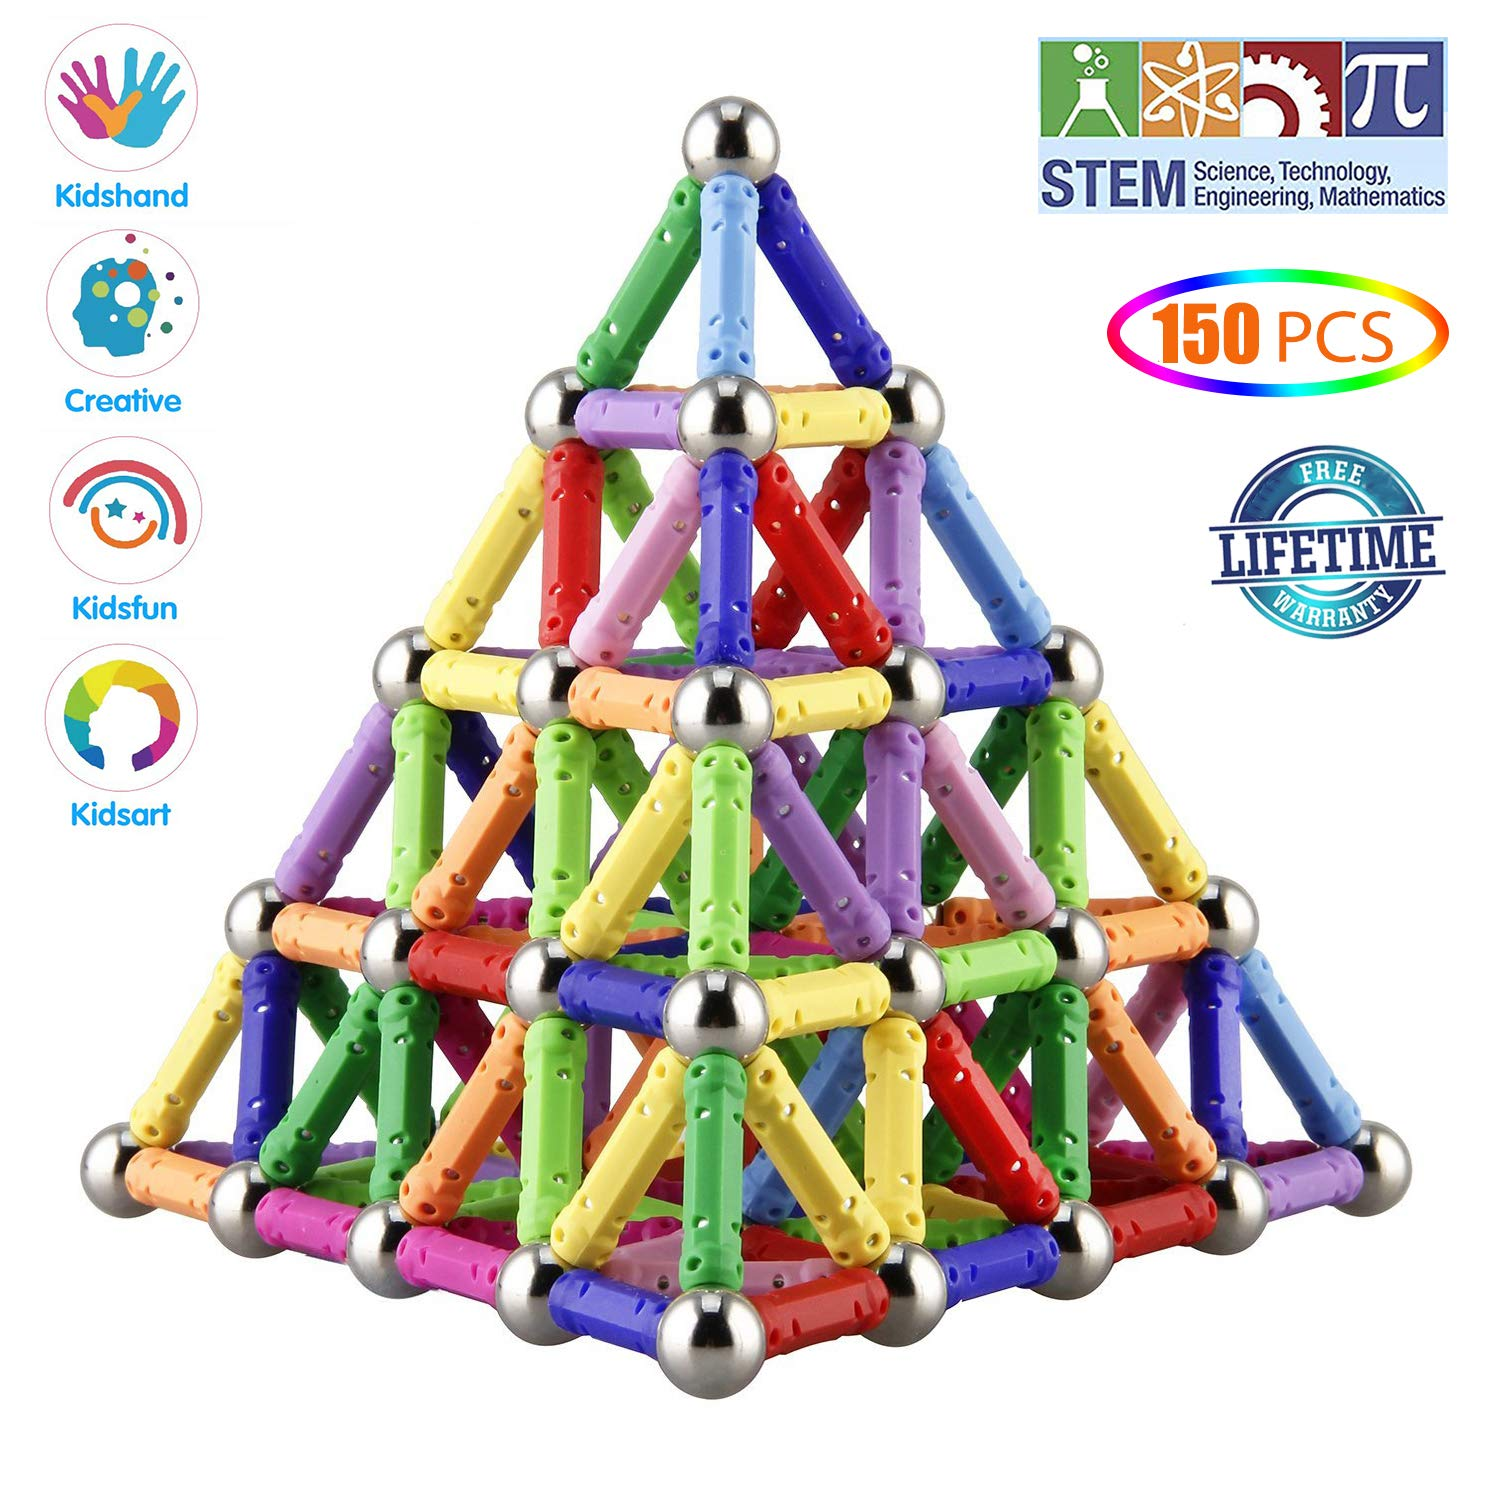 Veatree 150 Pieces Magnetic Building Sticks Building Blocks Set, Magnet Educational Toys Magnetic Blocks Sticks Stacking Toys Set for Kids and Adult, Construction Toys 3D Puzzle with Storage Bag by Veatree